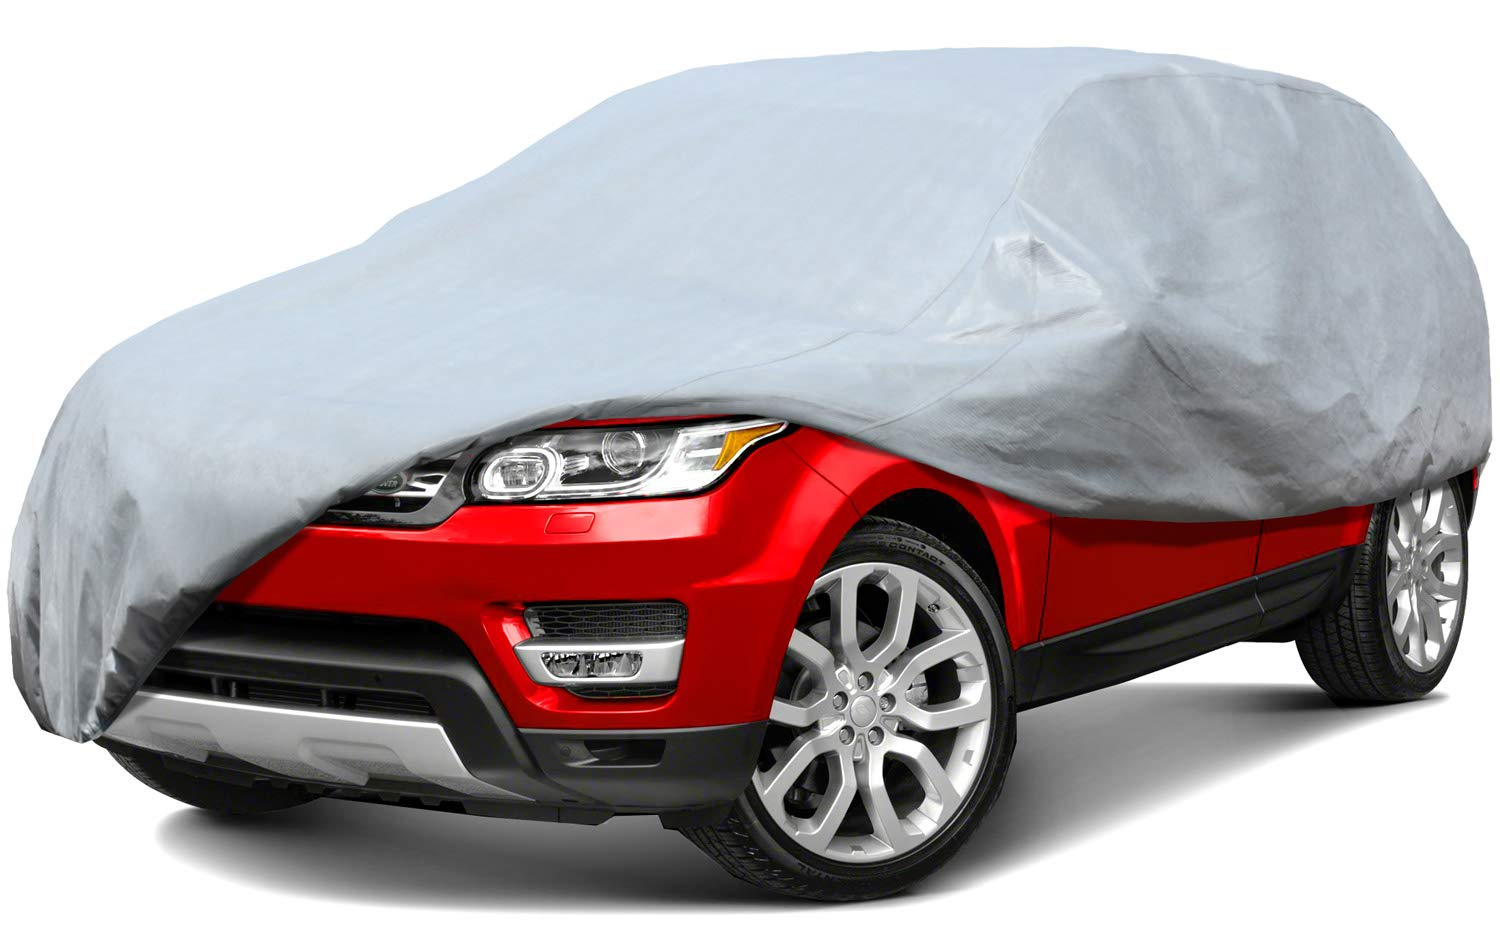 Leader Accessories 5 Layers SUV Cover 100% Waterproof UV Rays Resistant Outdoor Indoor Use SUV up to 187''